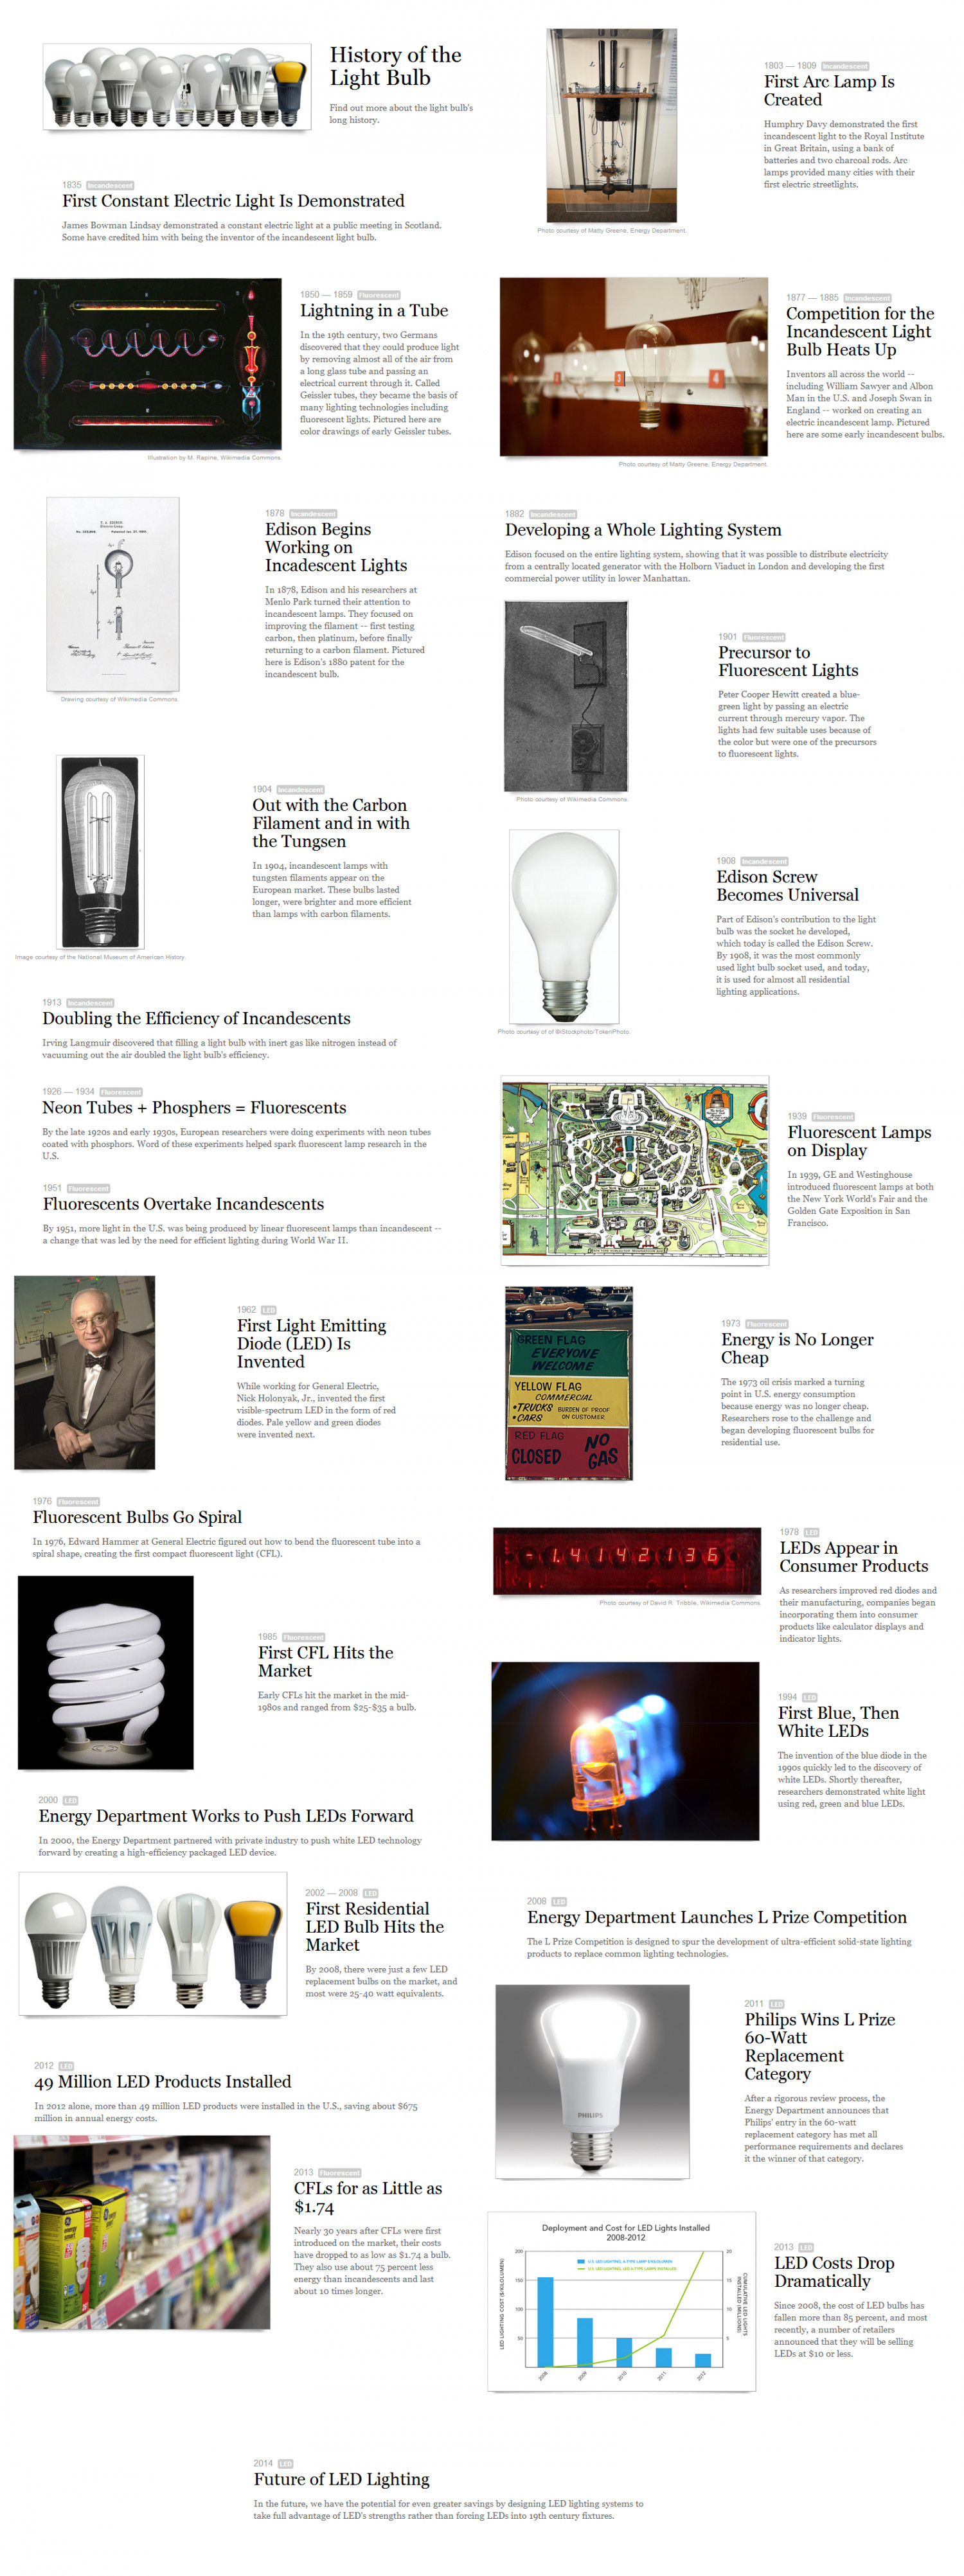 History of the Light Bulbs Infographic